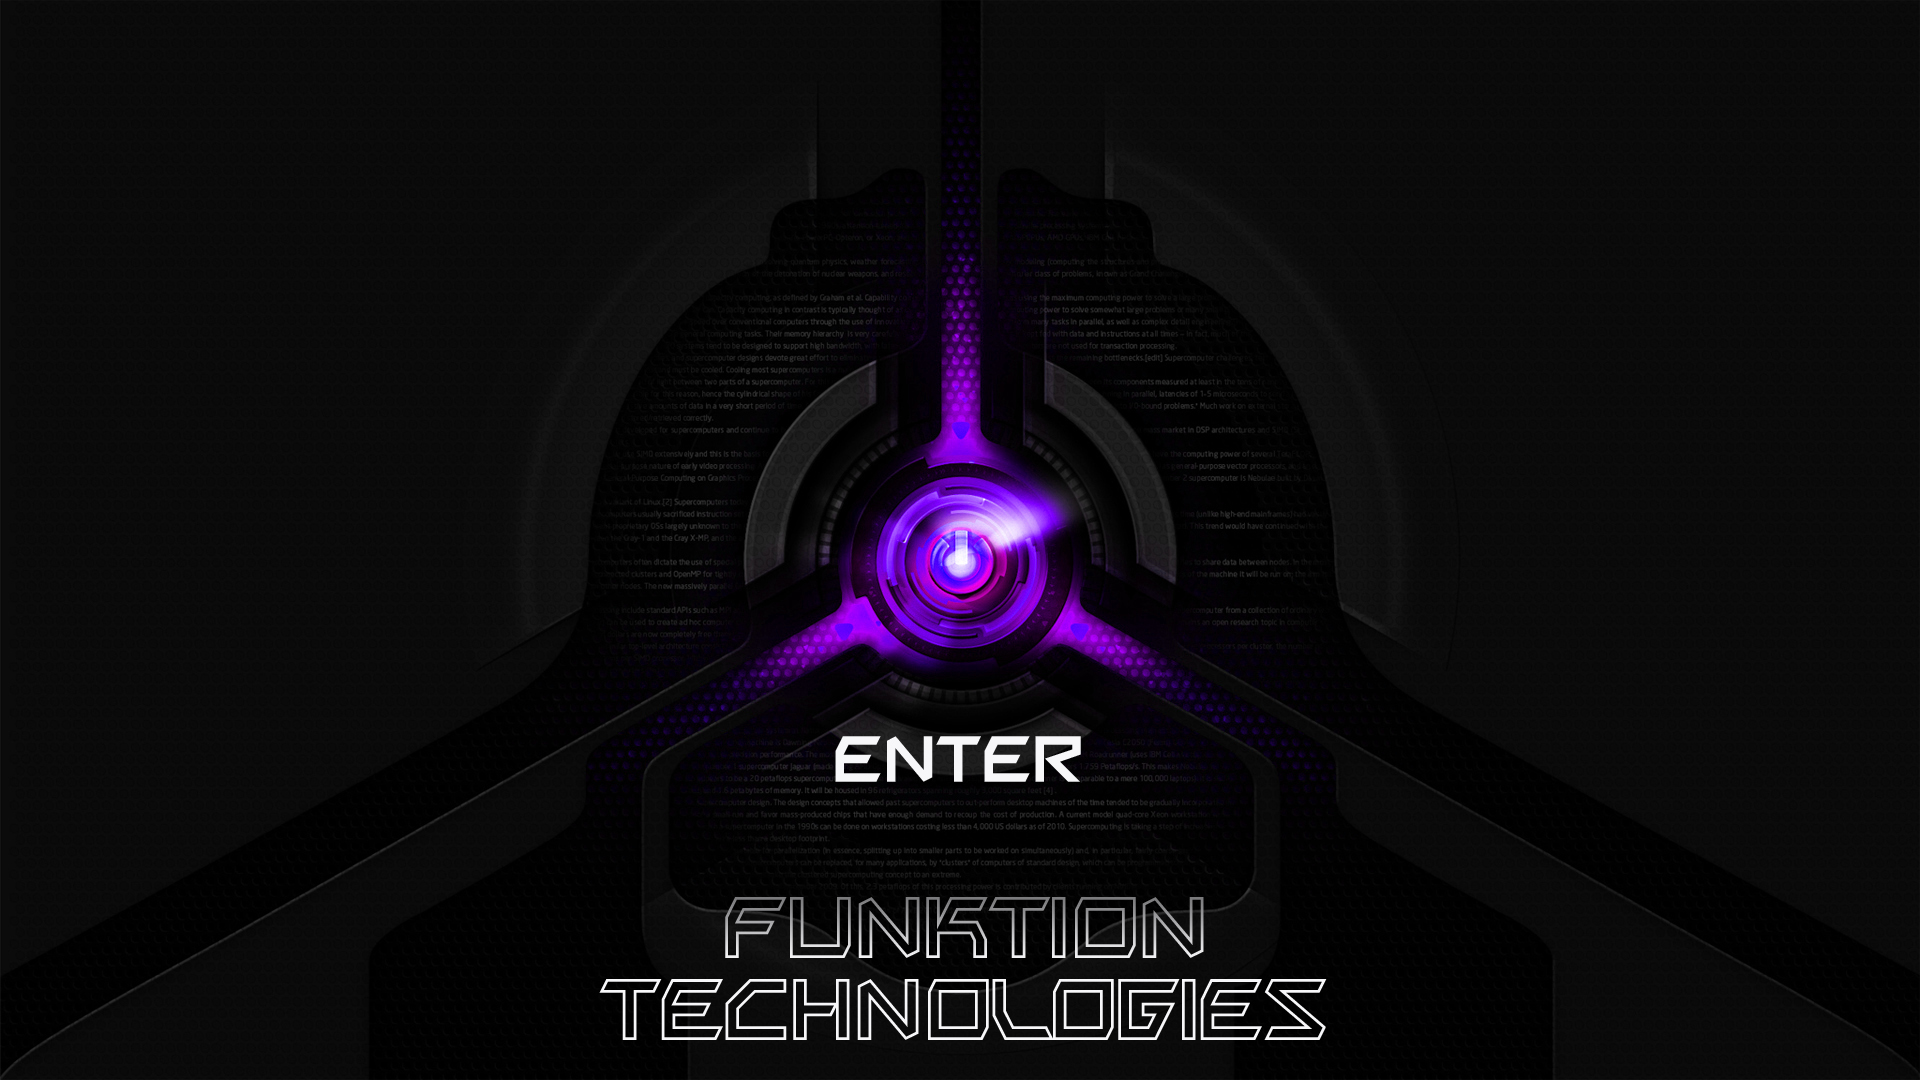 FUNKTION TECHNOLOGIES